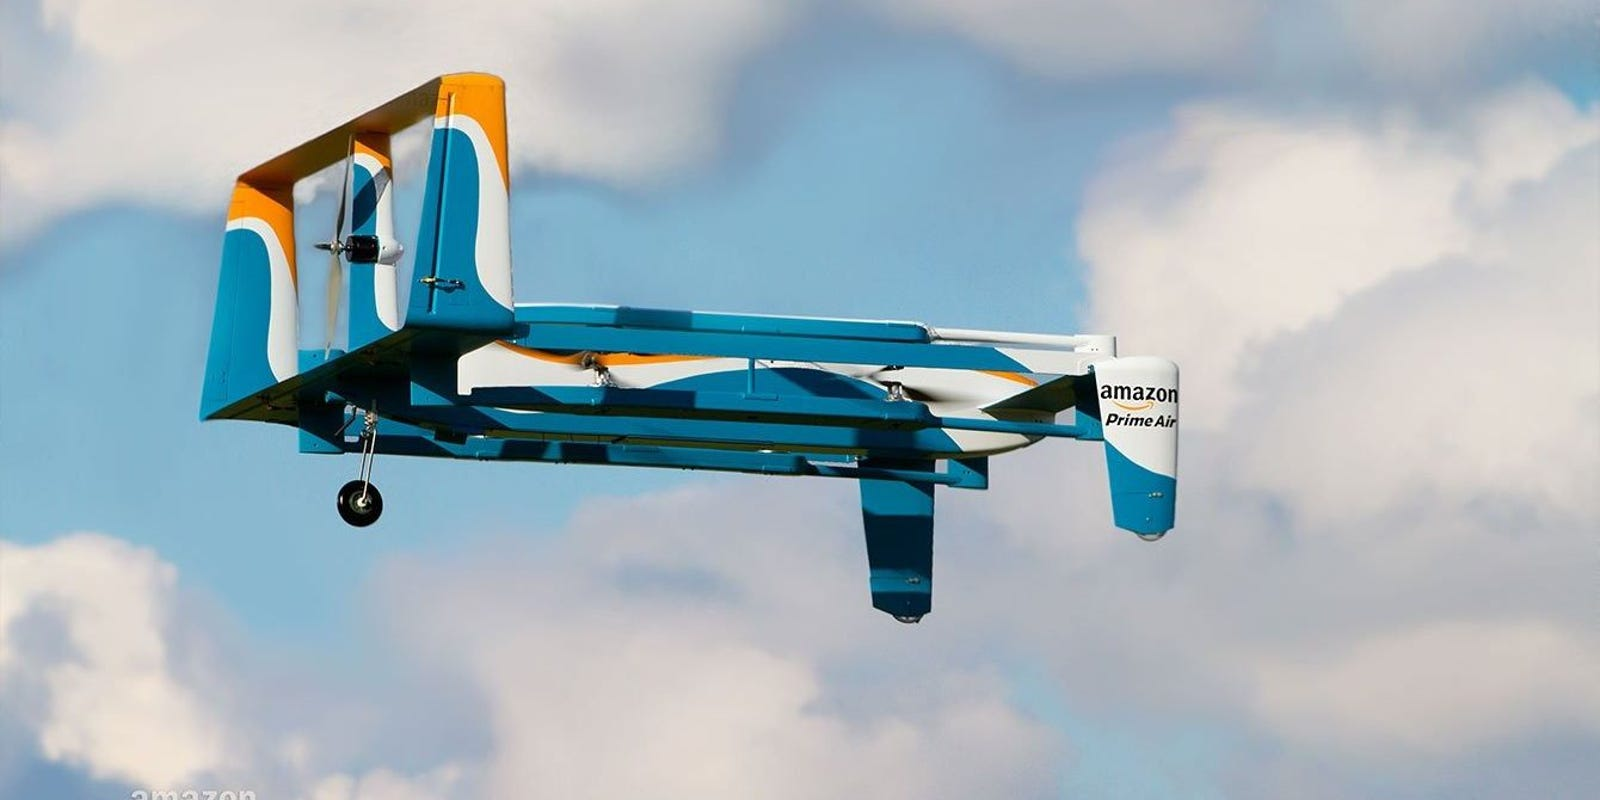 Amazon's Prime Air drone delivery service receives FAA approval